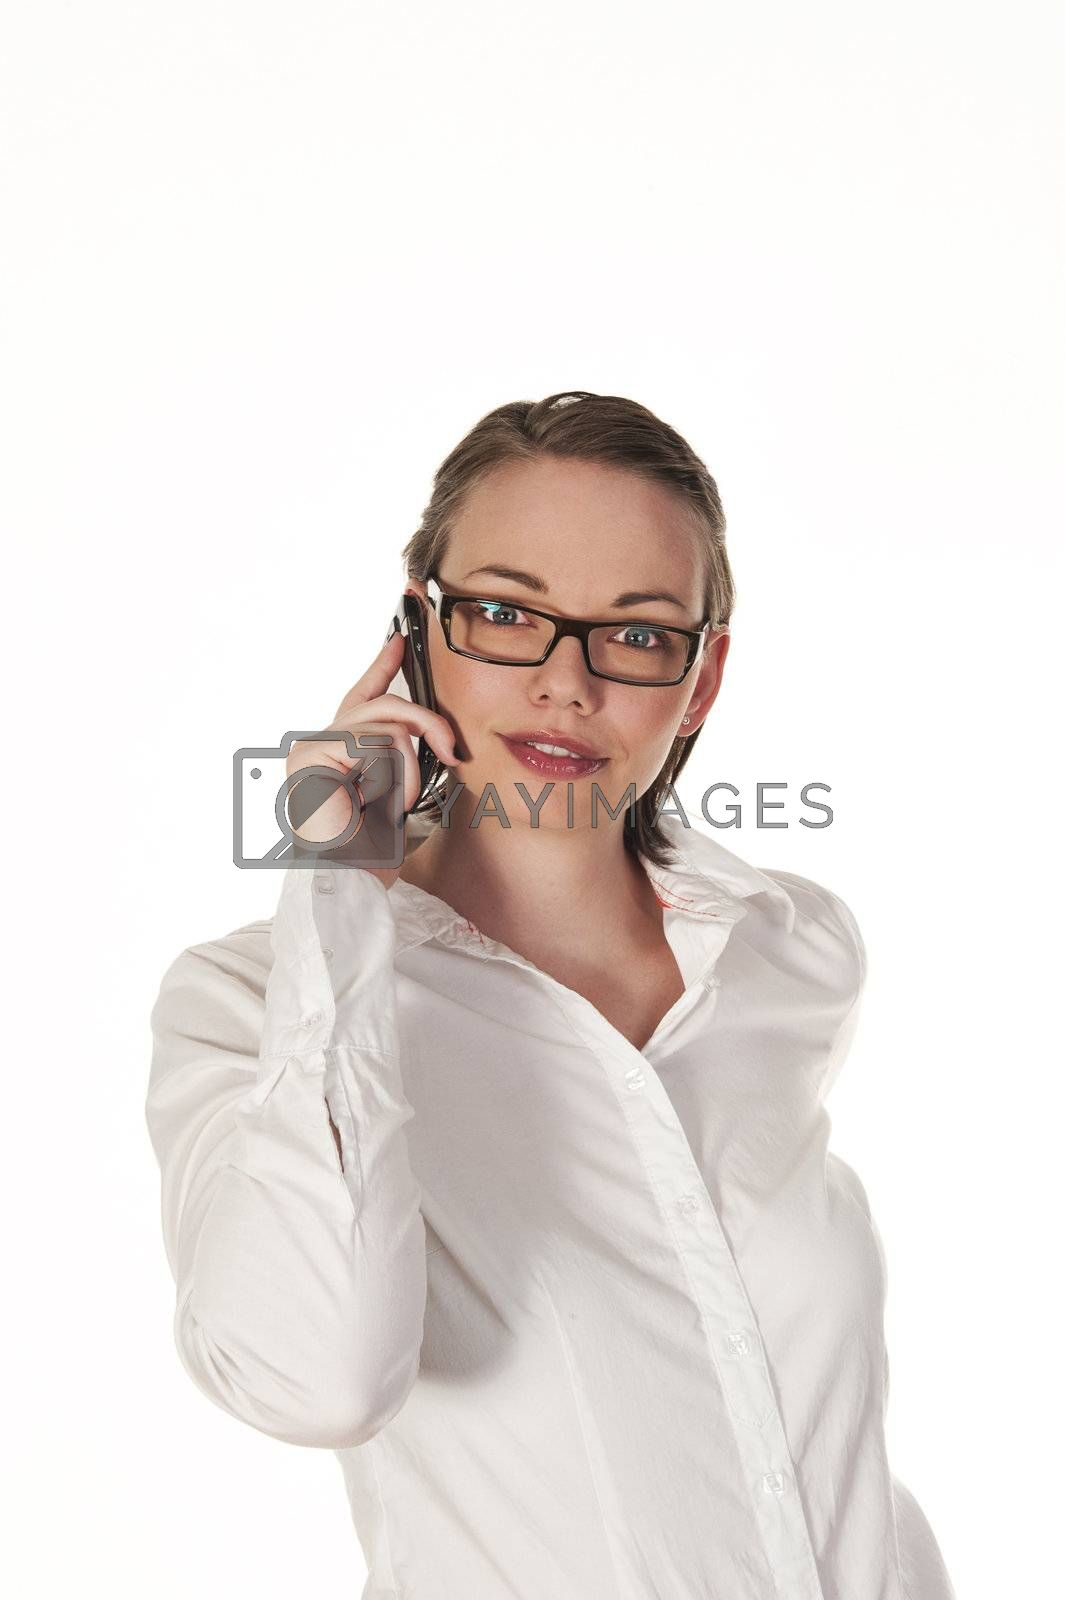 Beautiful girl answering a telephone call, seen isolated on white background